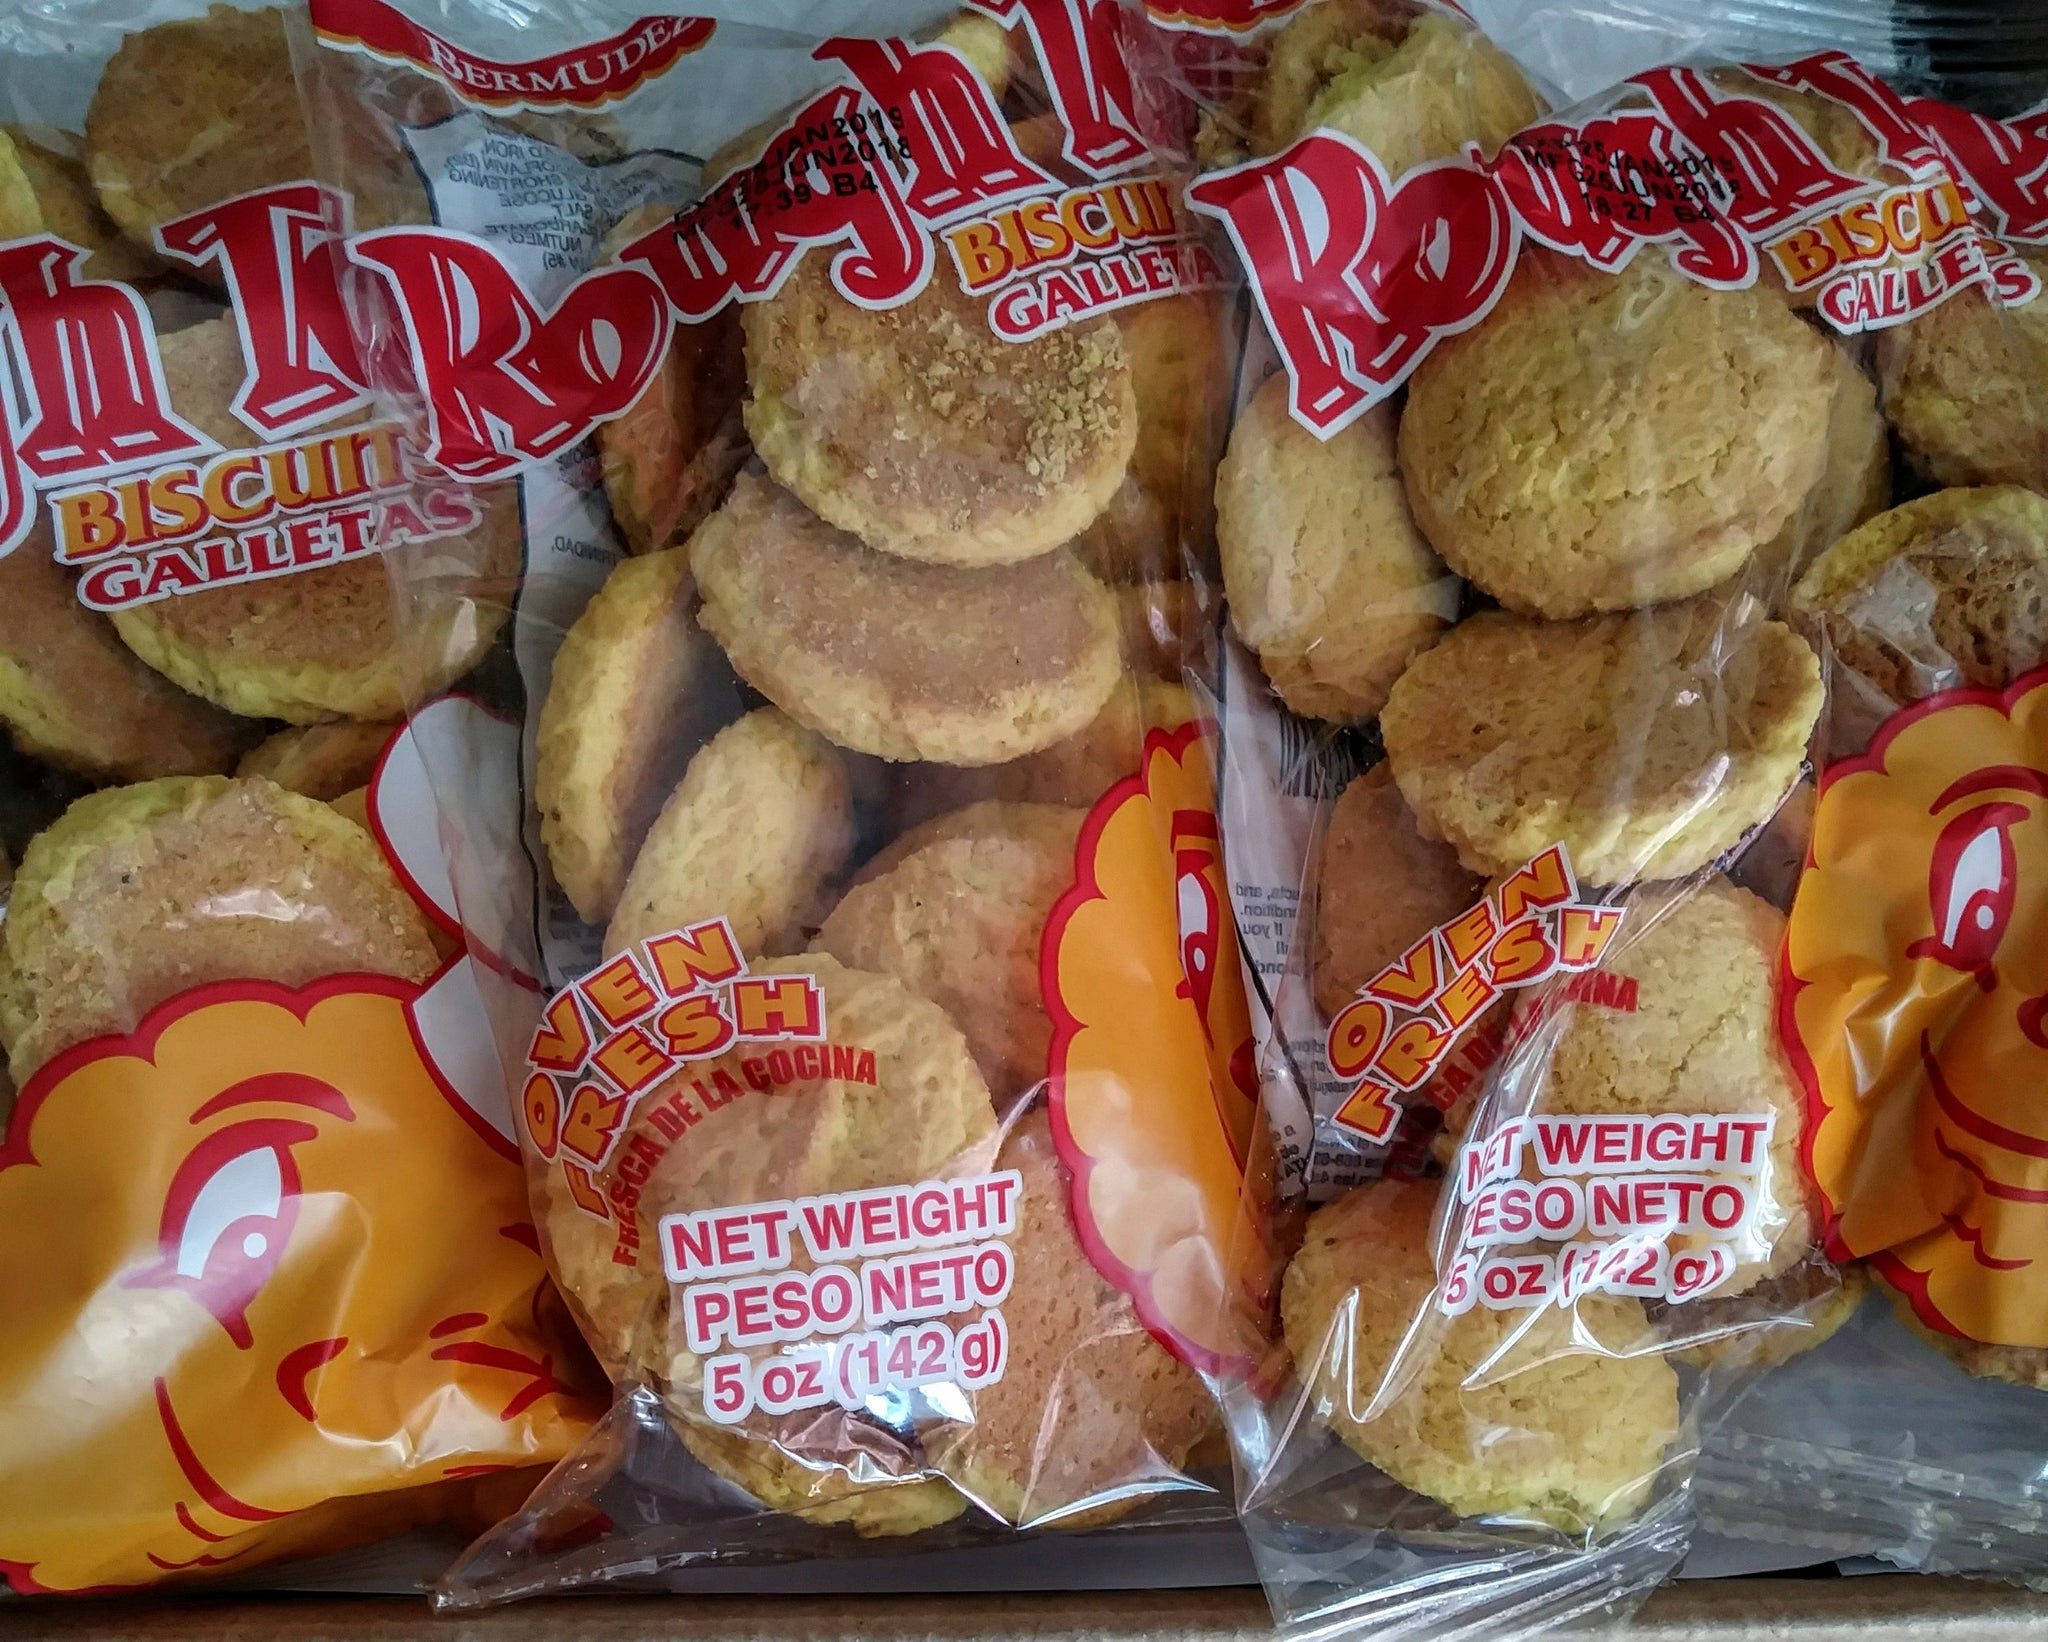 Rough Top Biscuits (3 Packs)